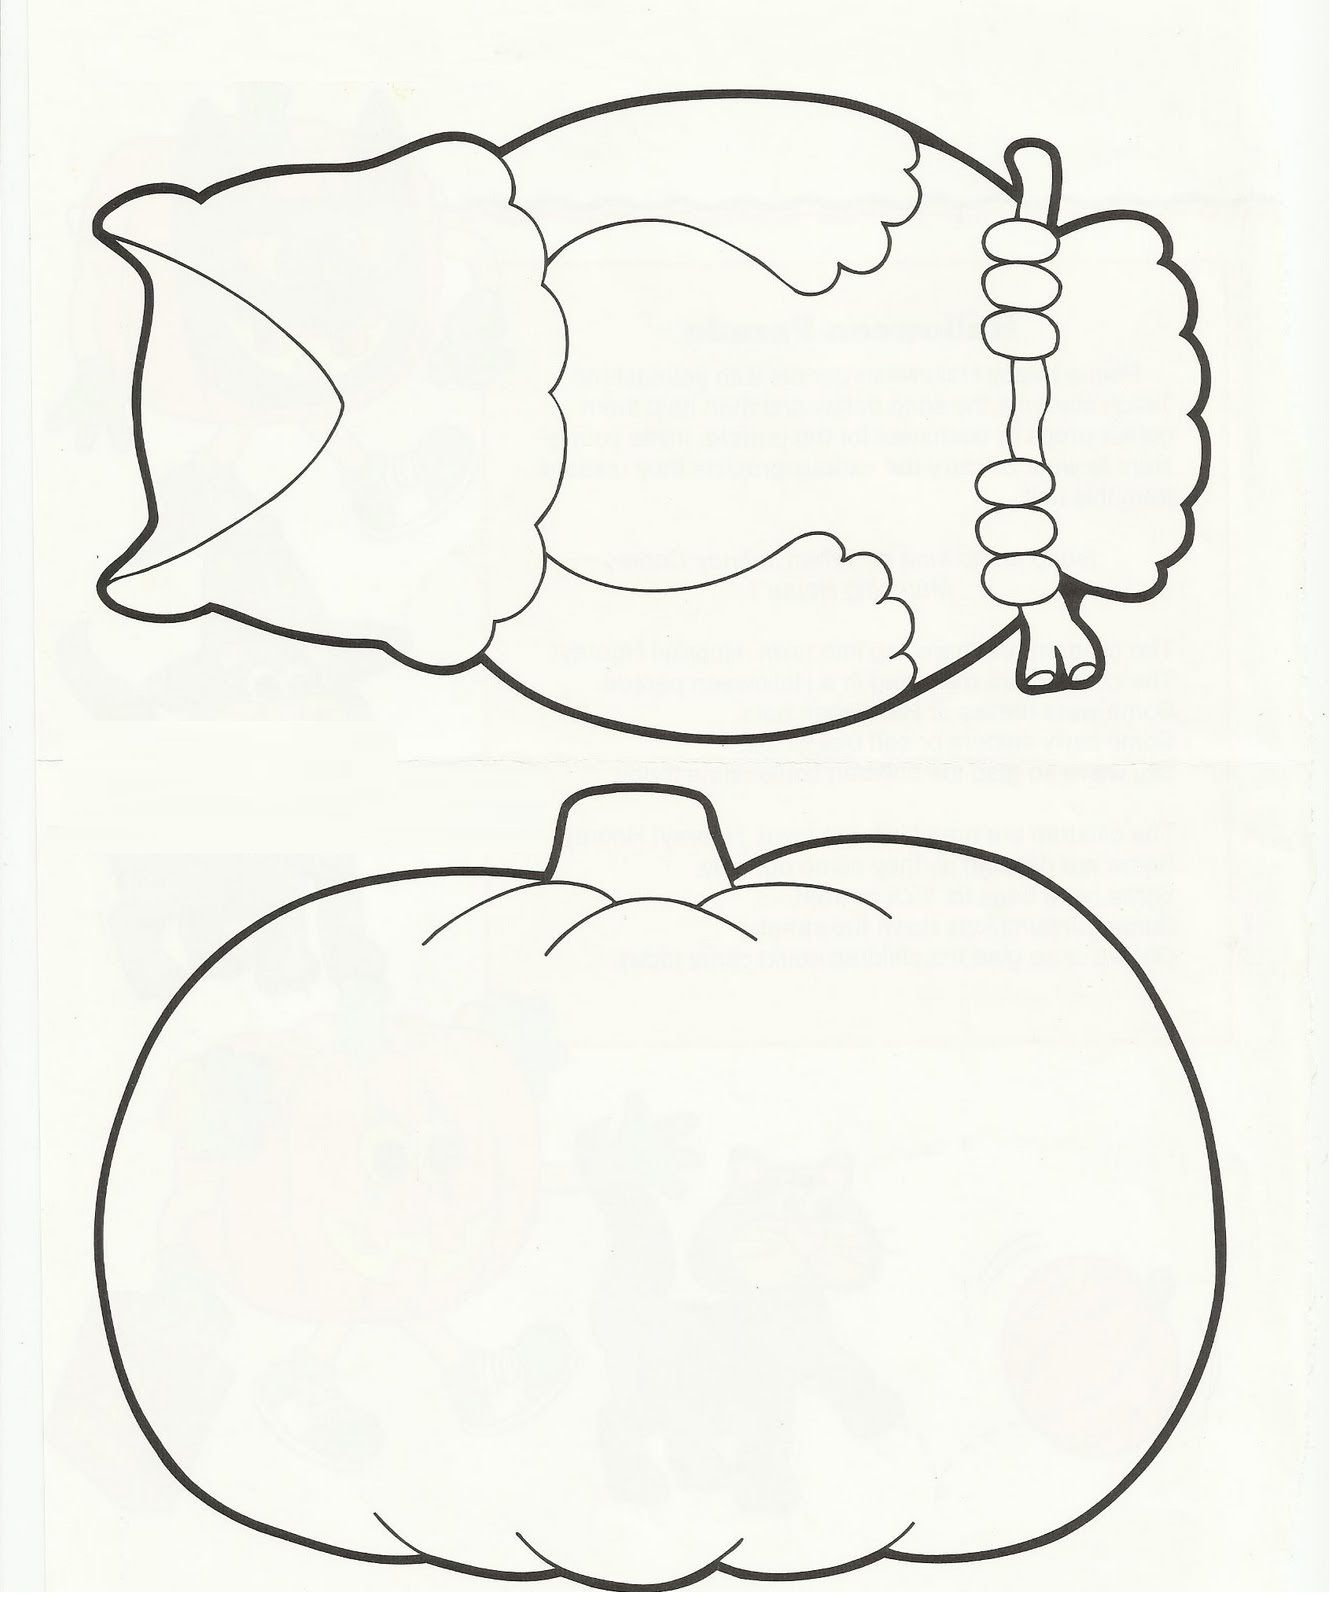 Printable Halloween Owl And Pumpkin Templates Activity Coloring Pages